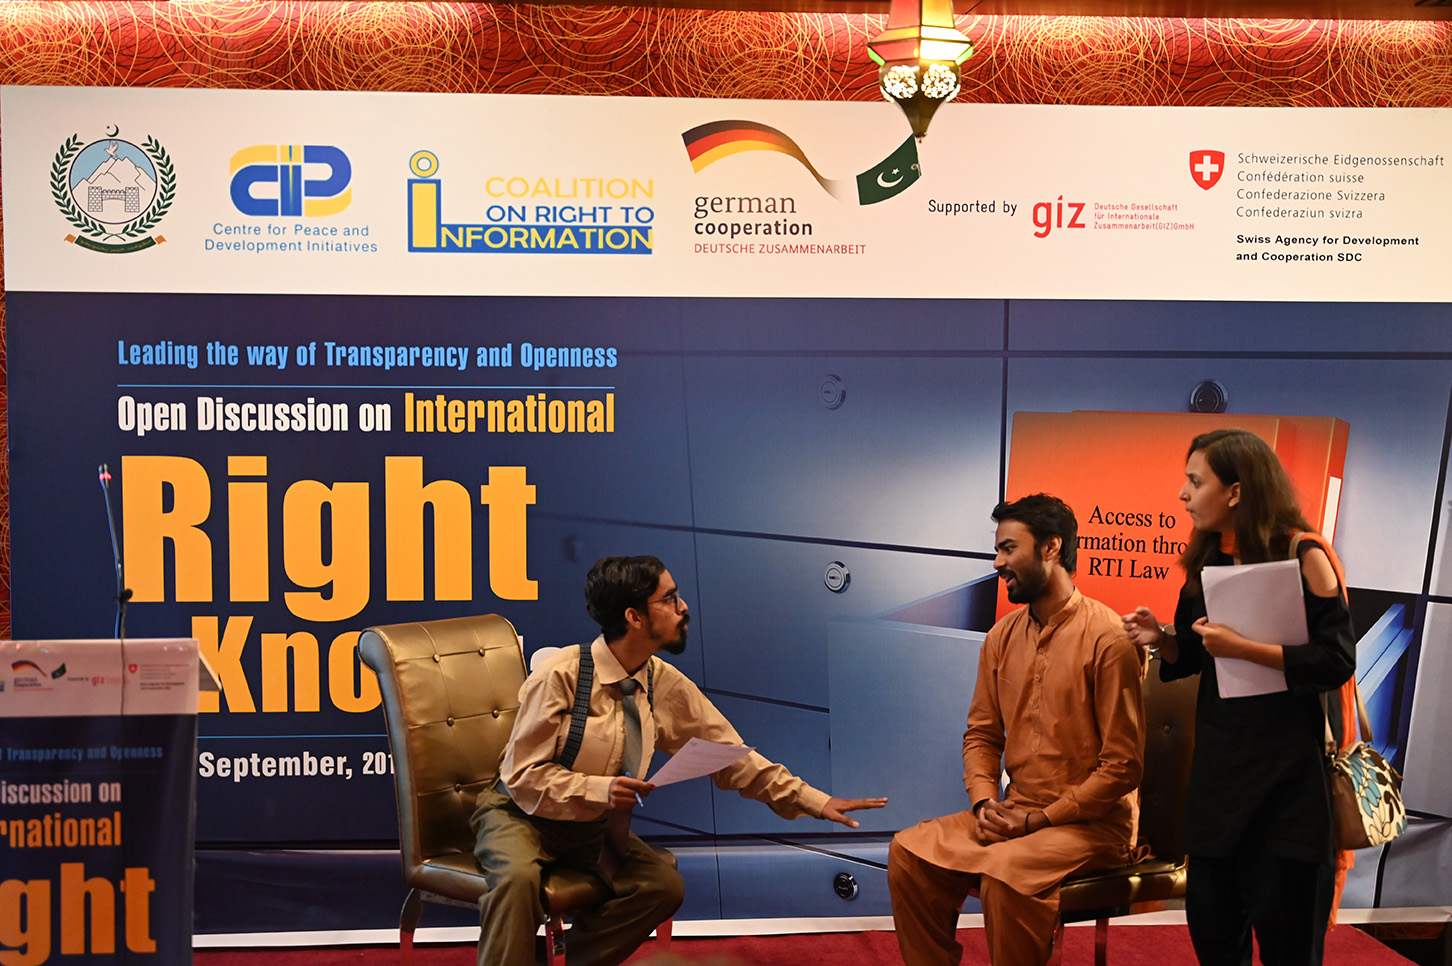 A talented team of Centre for Communication Programs Pakistan performed a skit on RTI